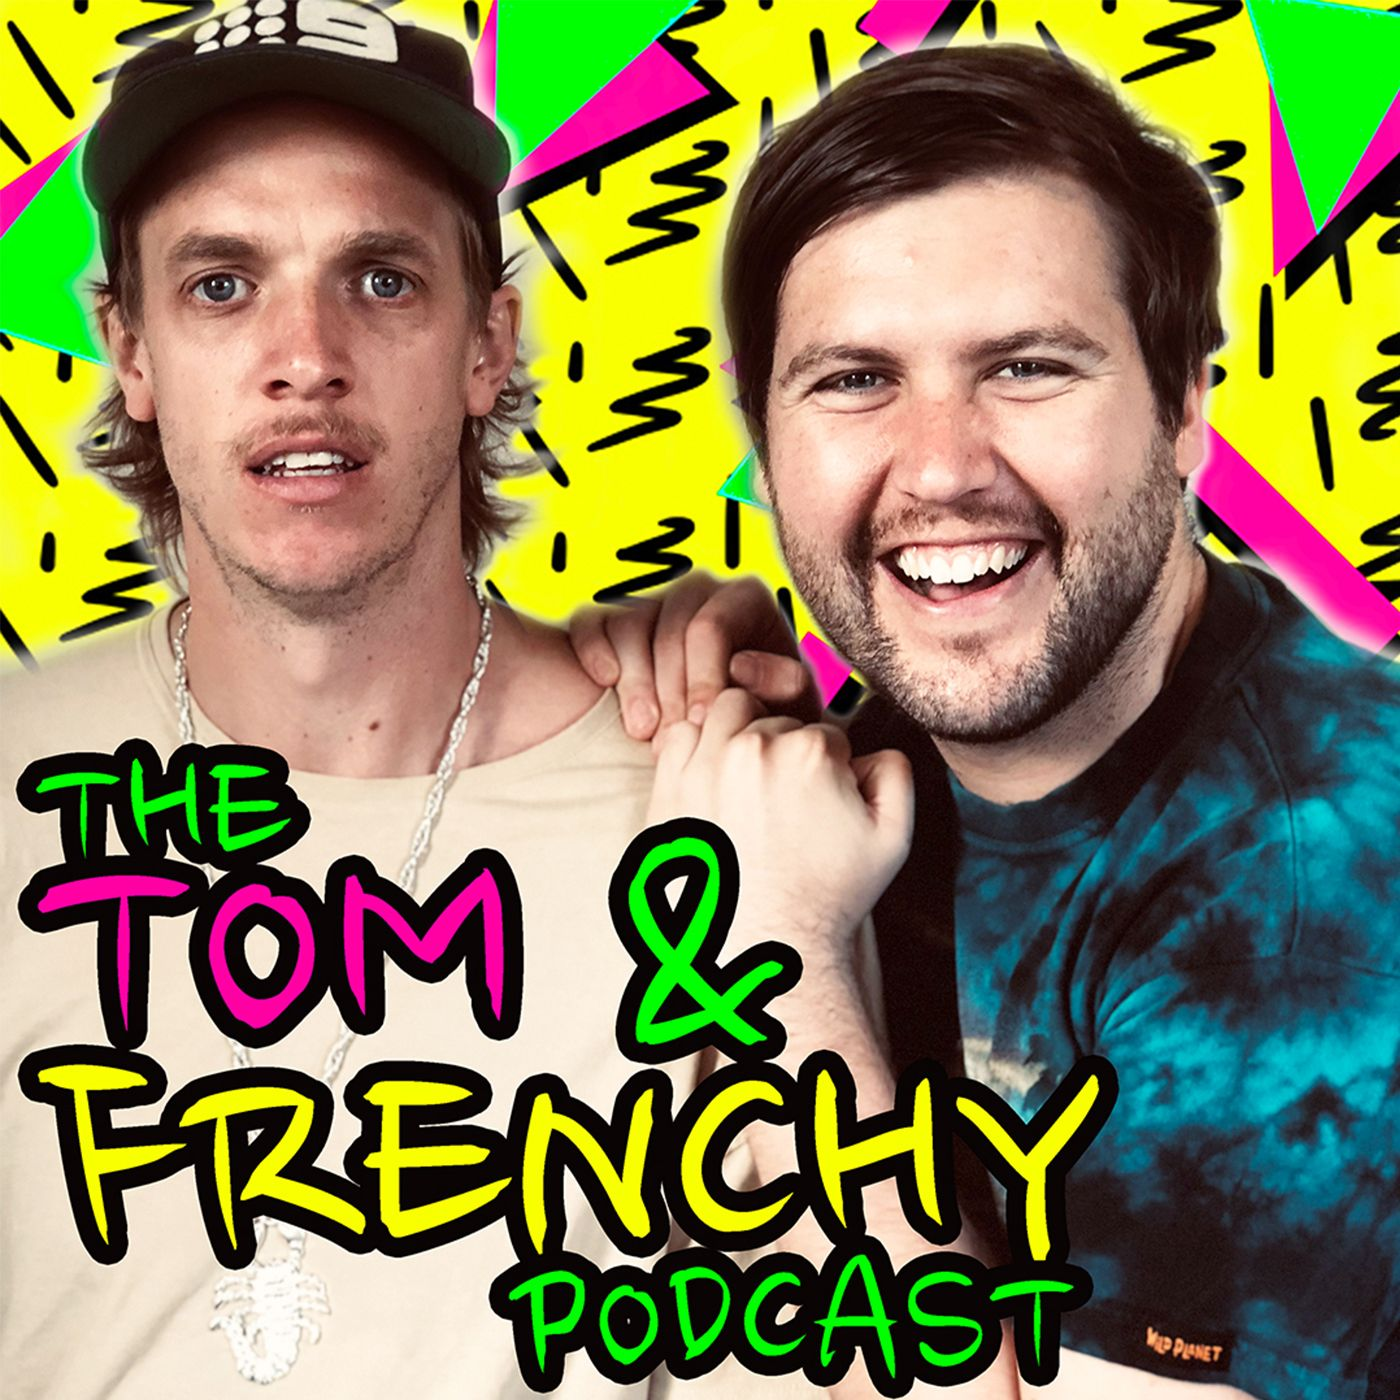 The Tom and Frenchy Podcast - Whooshkaa